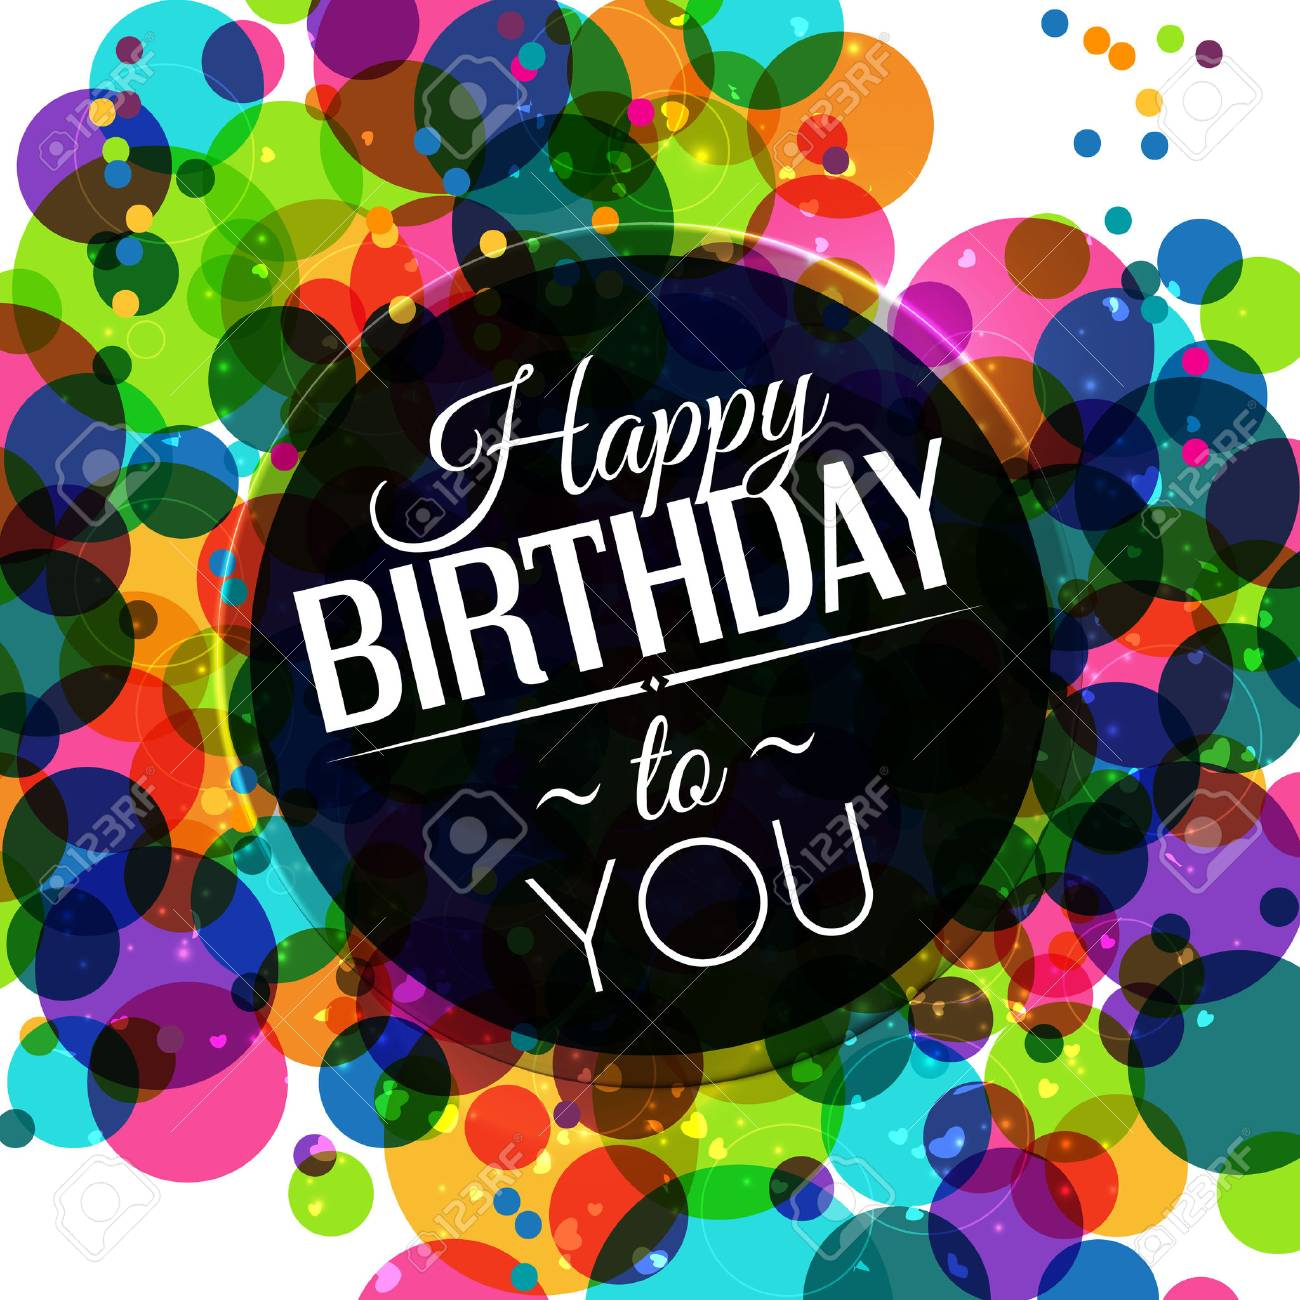 Birthday card in bright colors on polka dots background. - 31493872